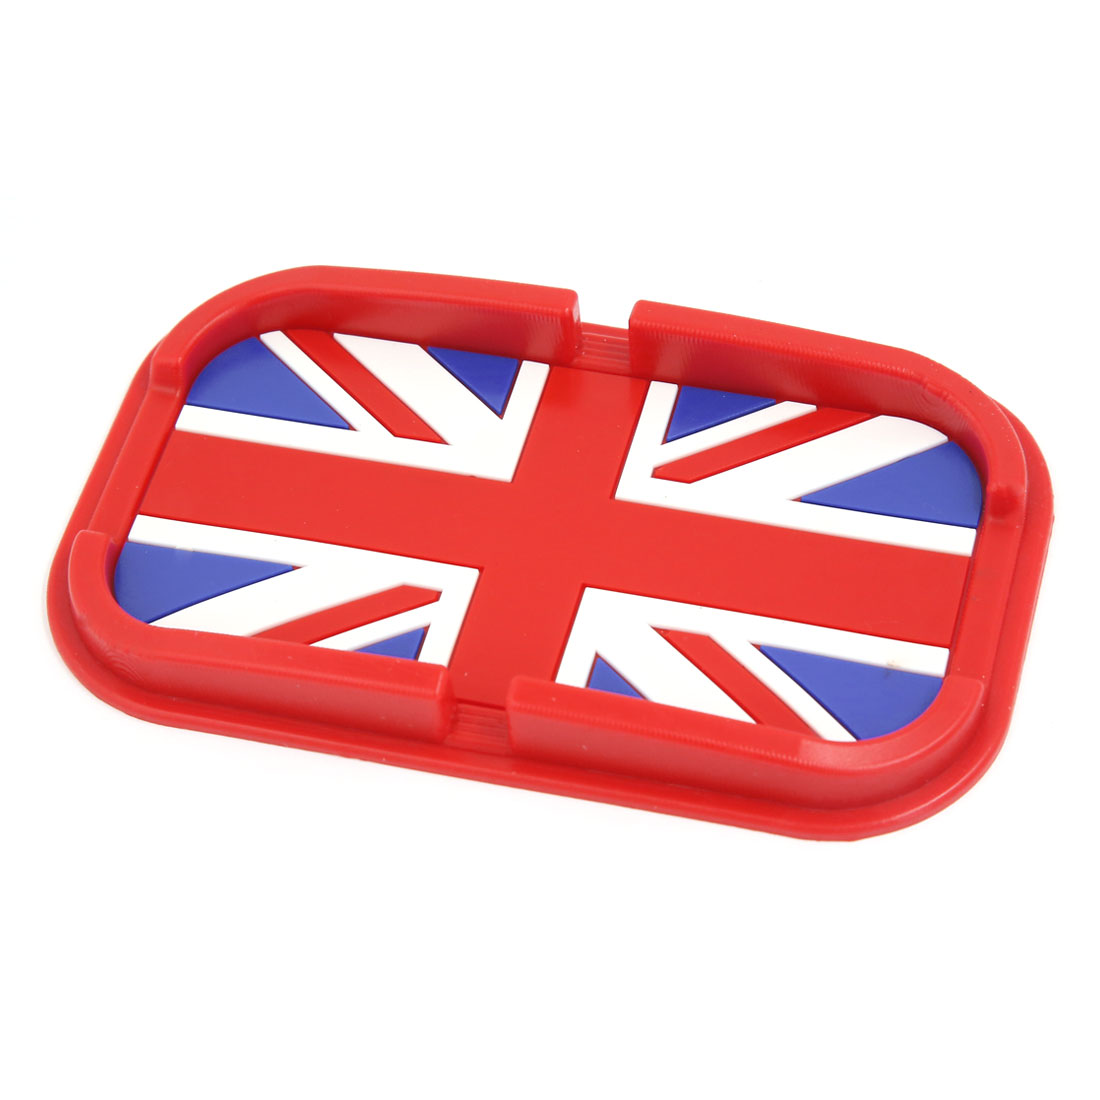 Automobile Navigation Red Rubber British Flag Pattern Non-Slip Pad Mat Holder